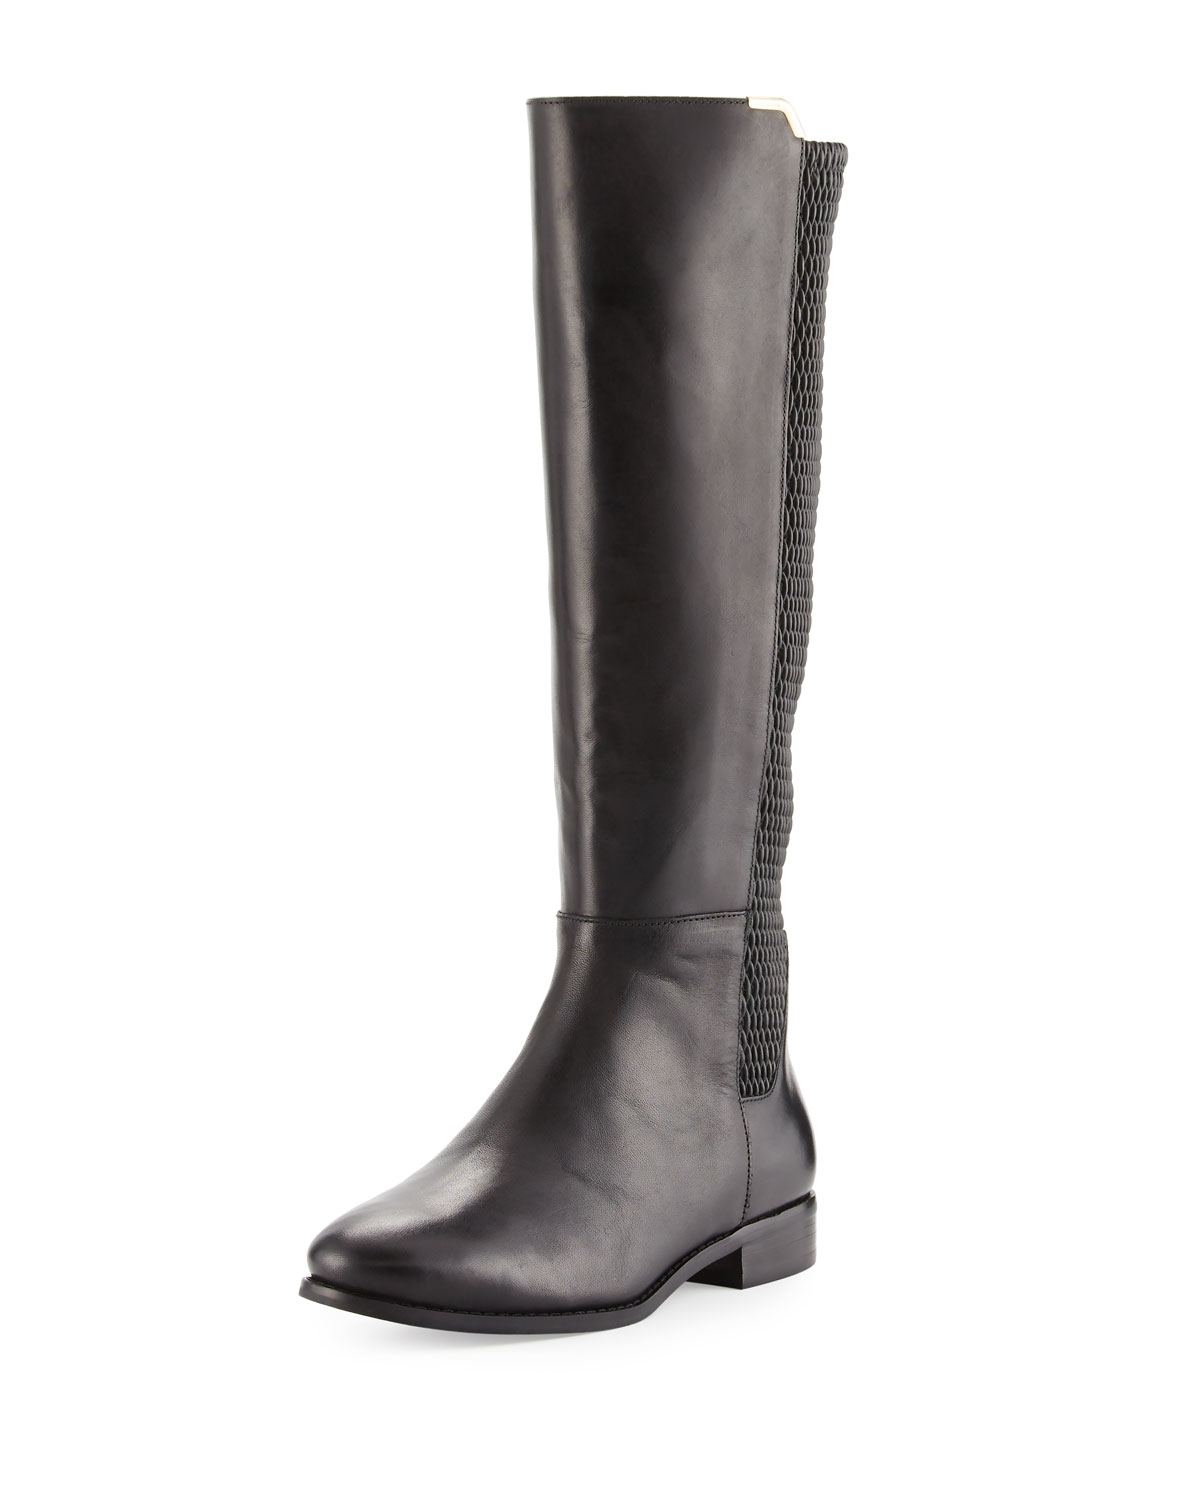 3812e1a42cb Rockland Leather Knee Boot, Black